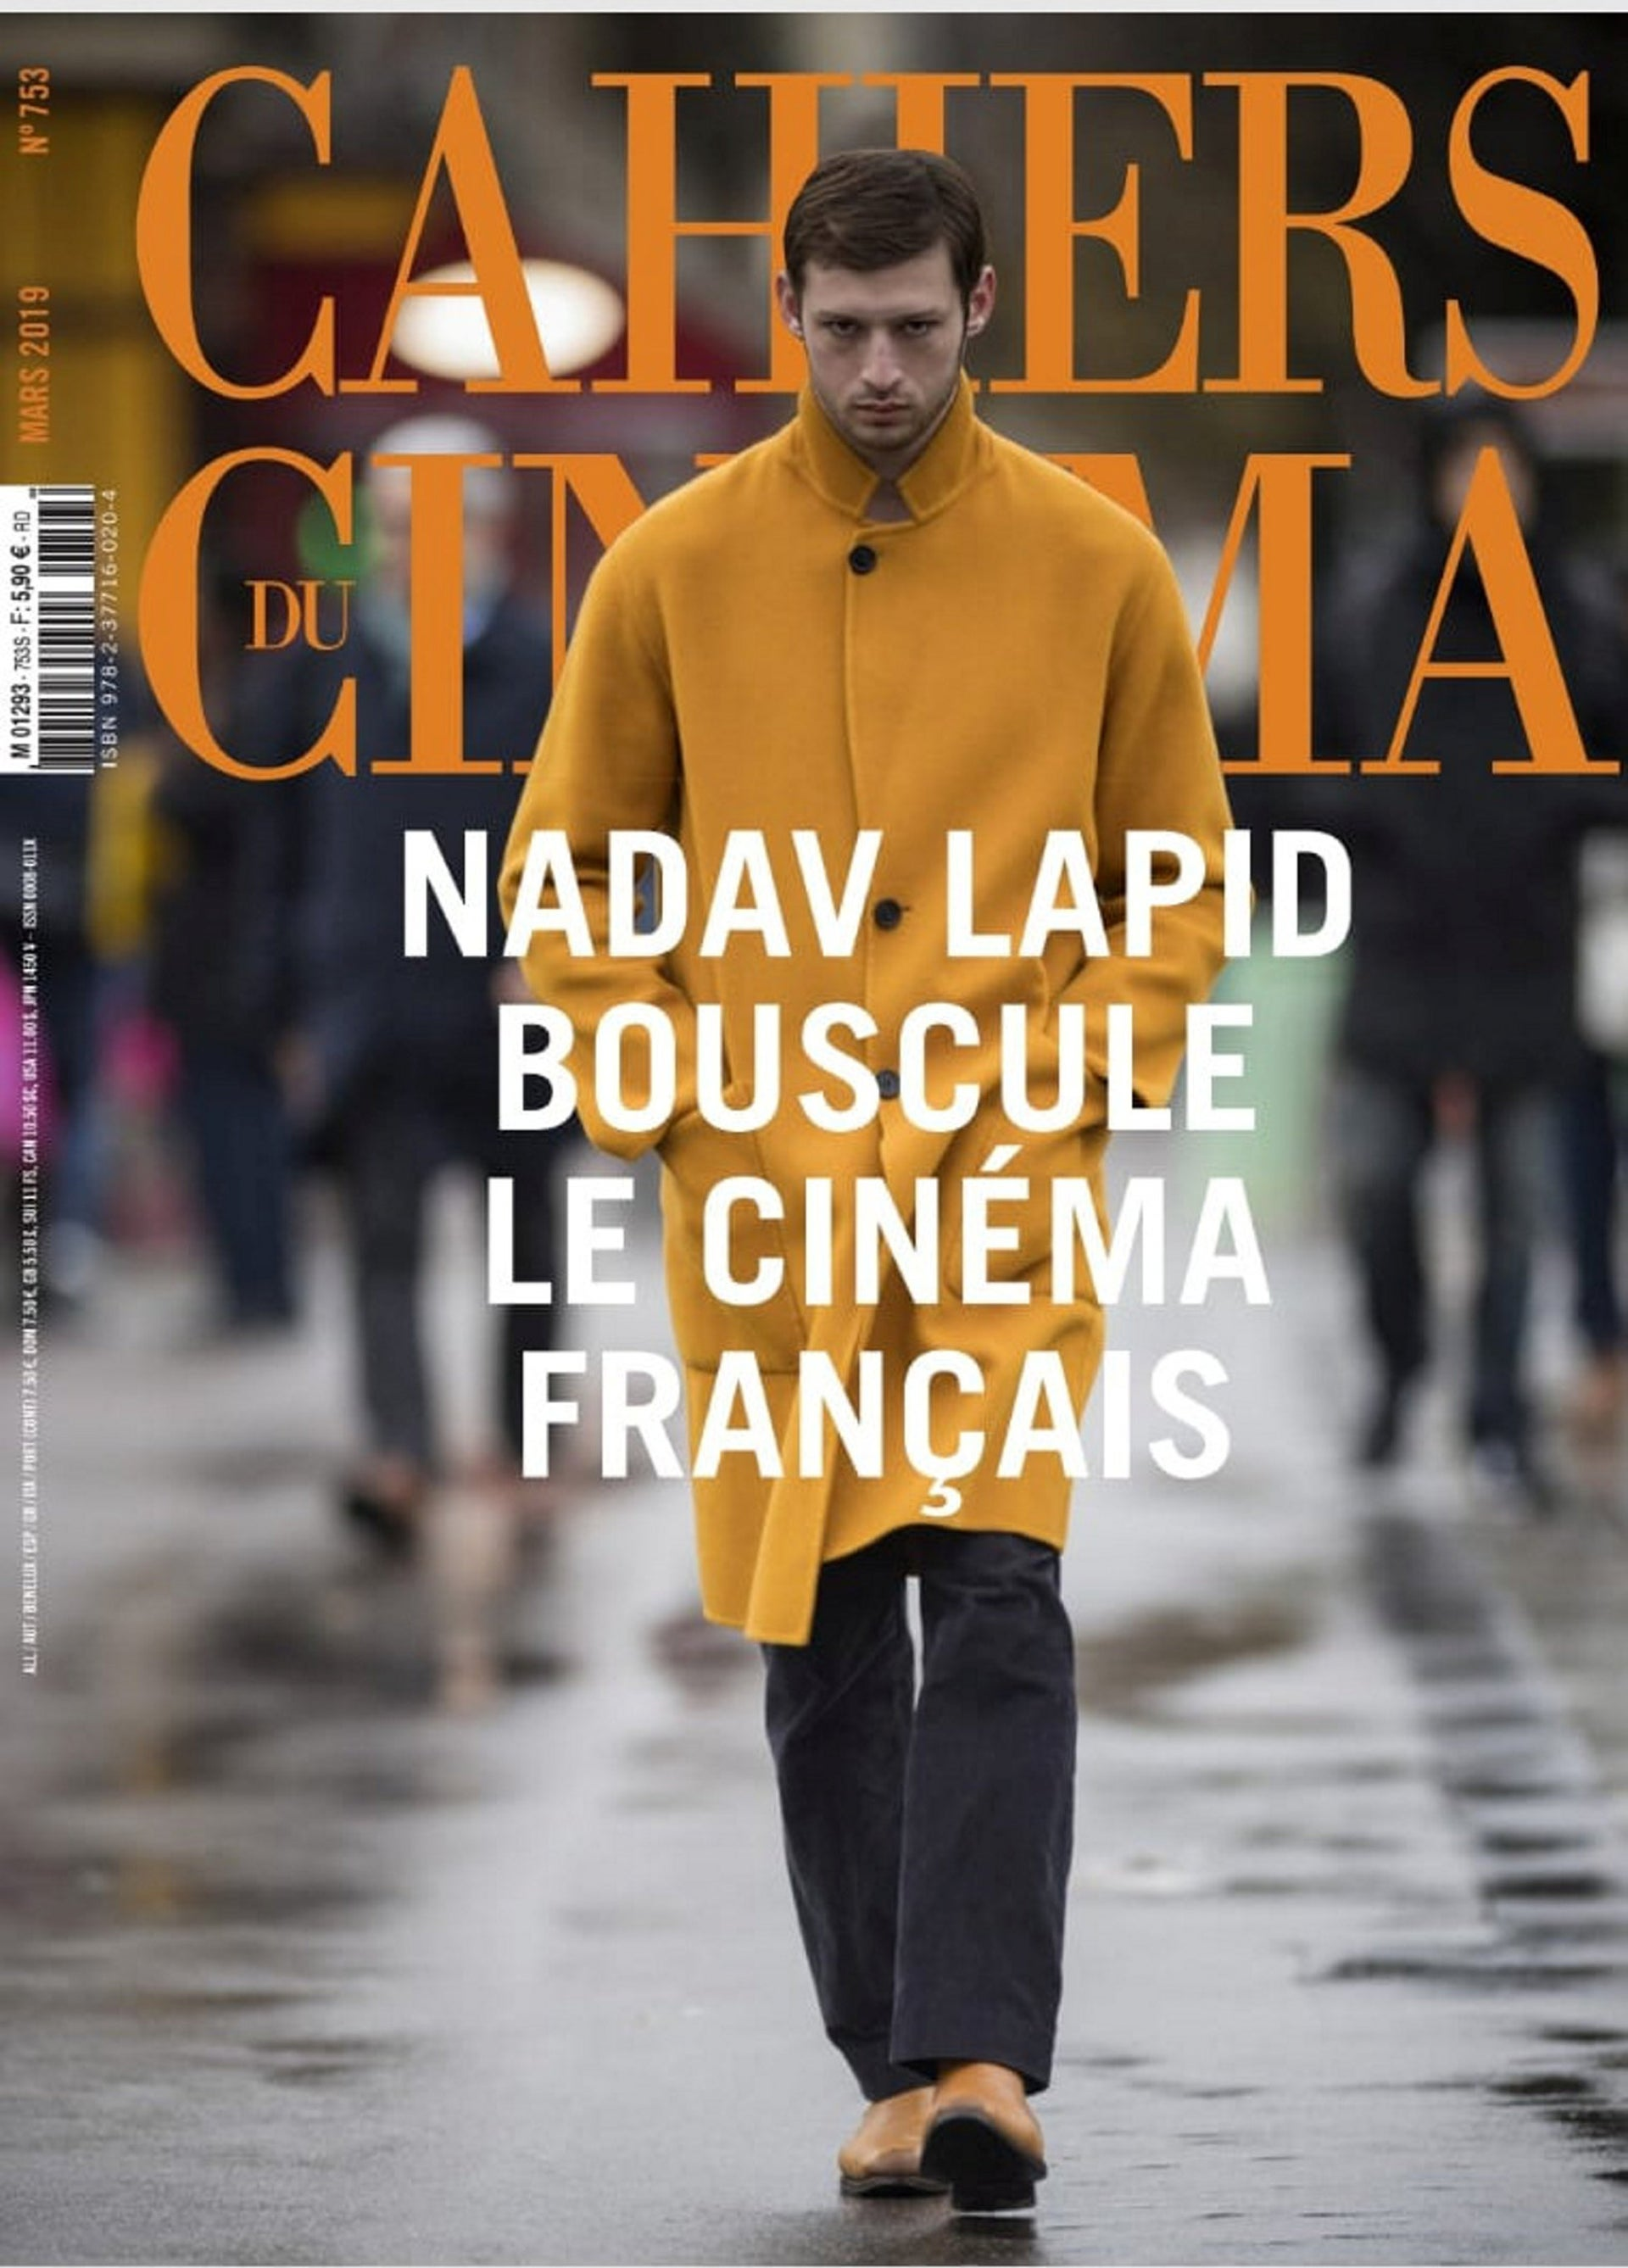 Mercier on the cover of the respected French film magazine 'Cahiers du Cinéma'.